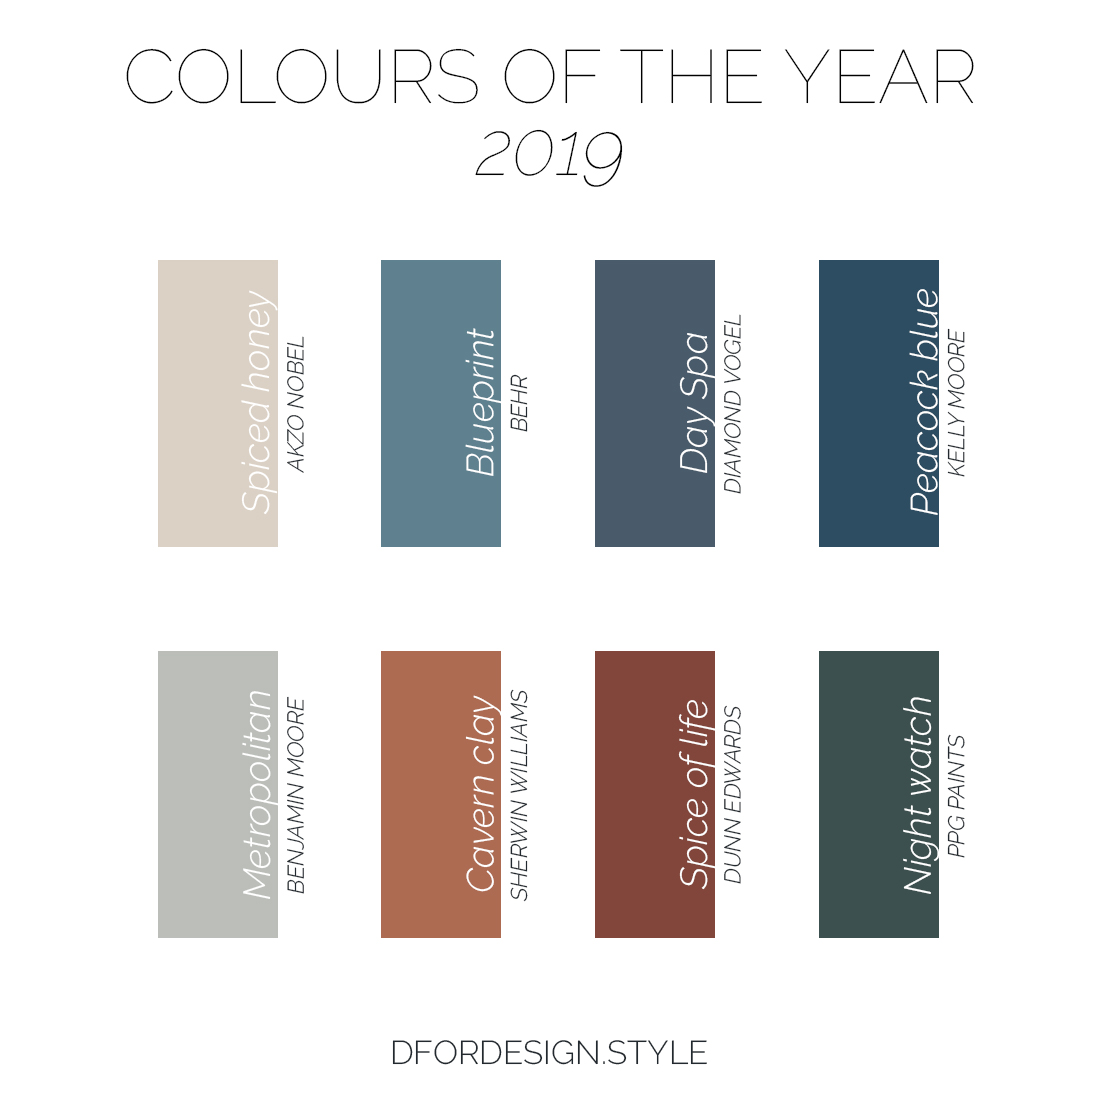 Colours of the Year 2019; recap infographic.